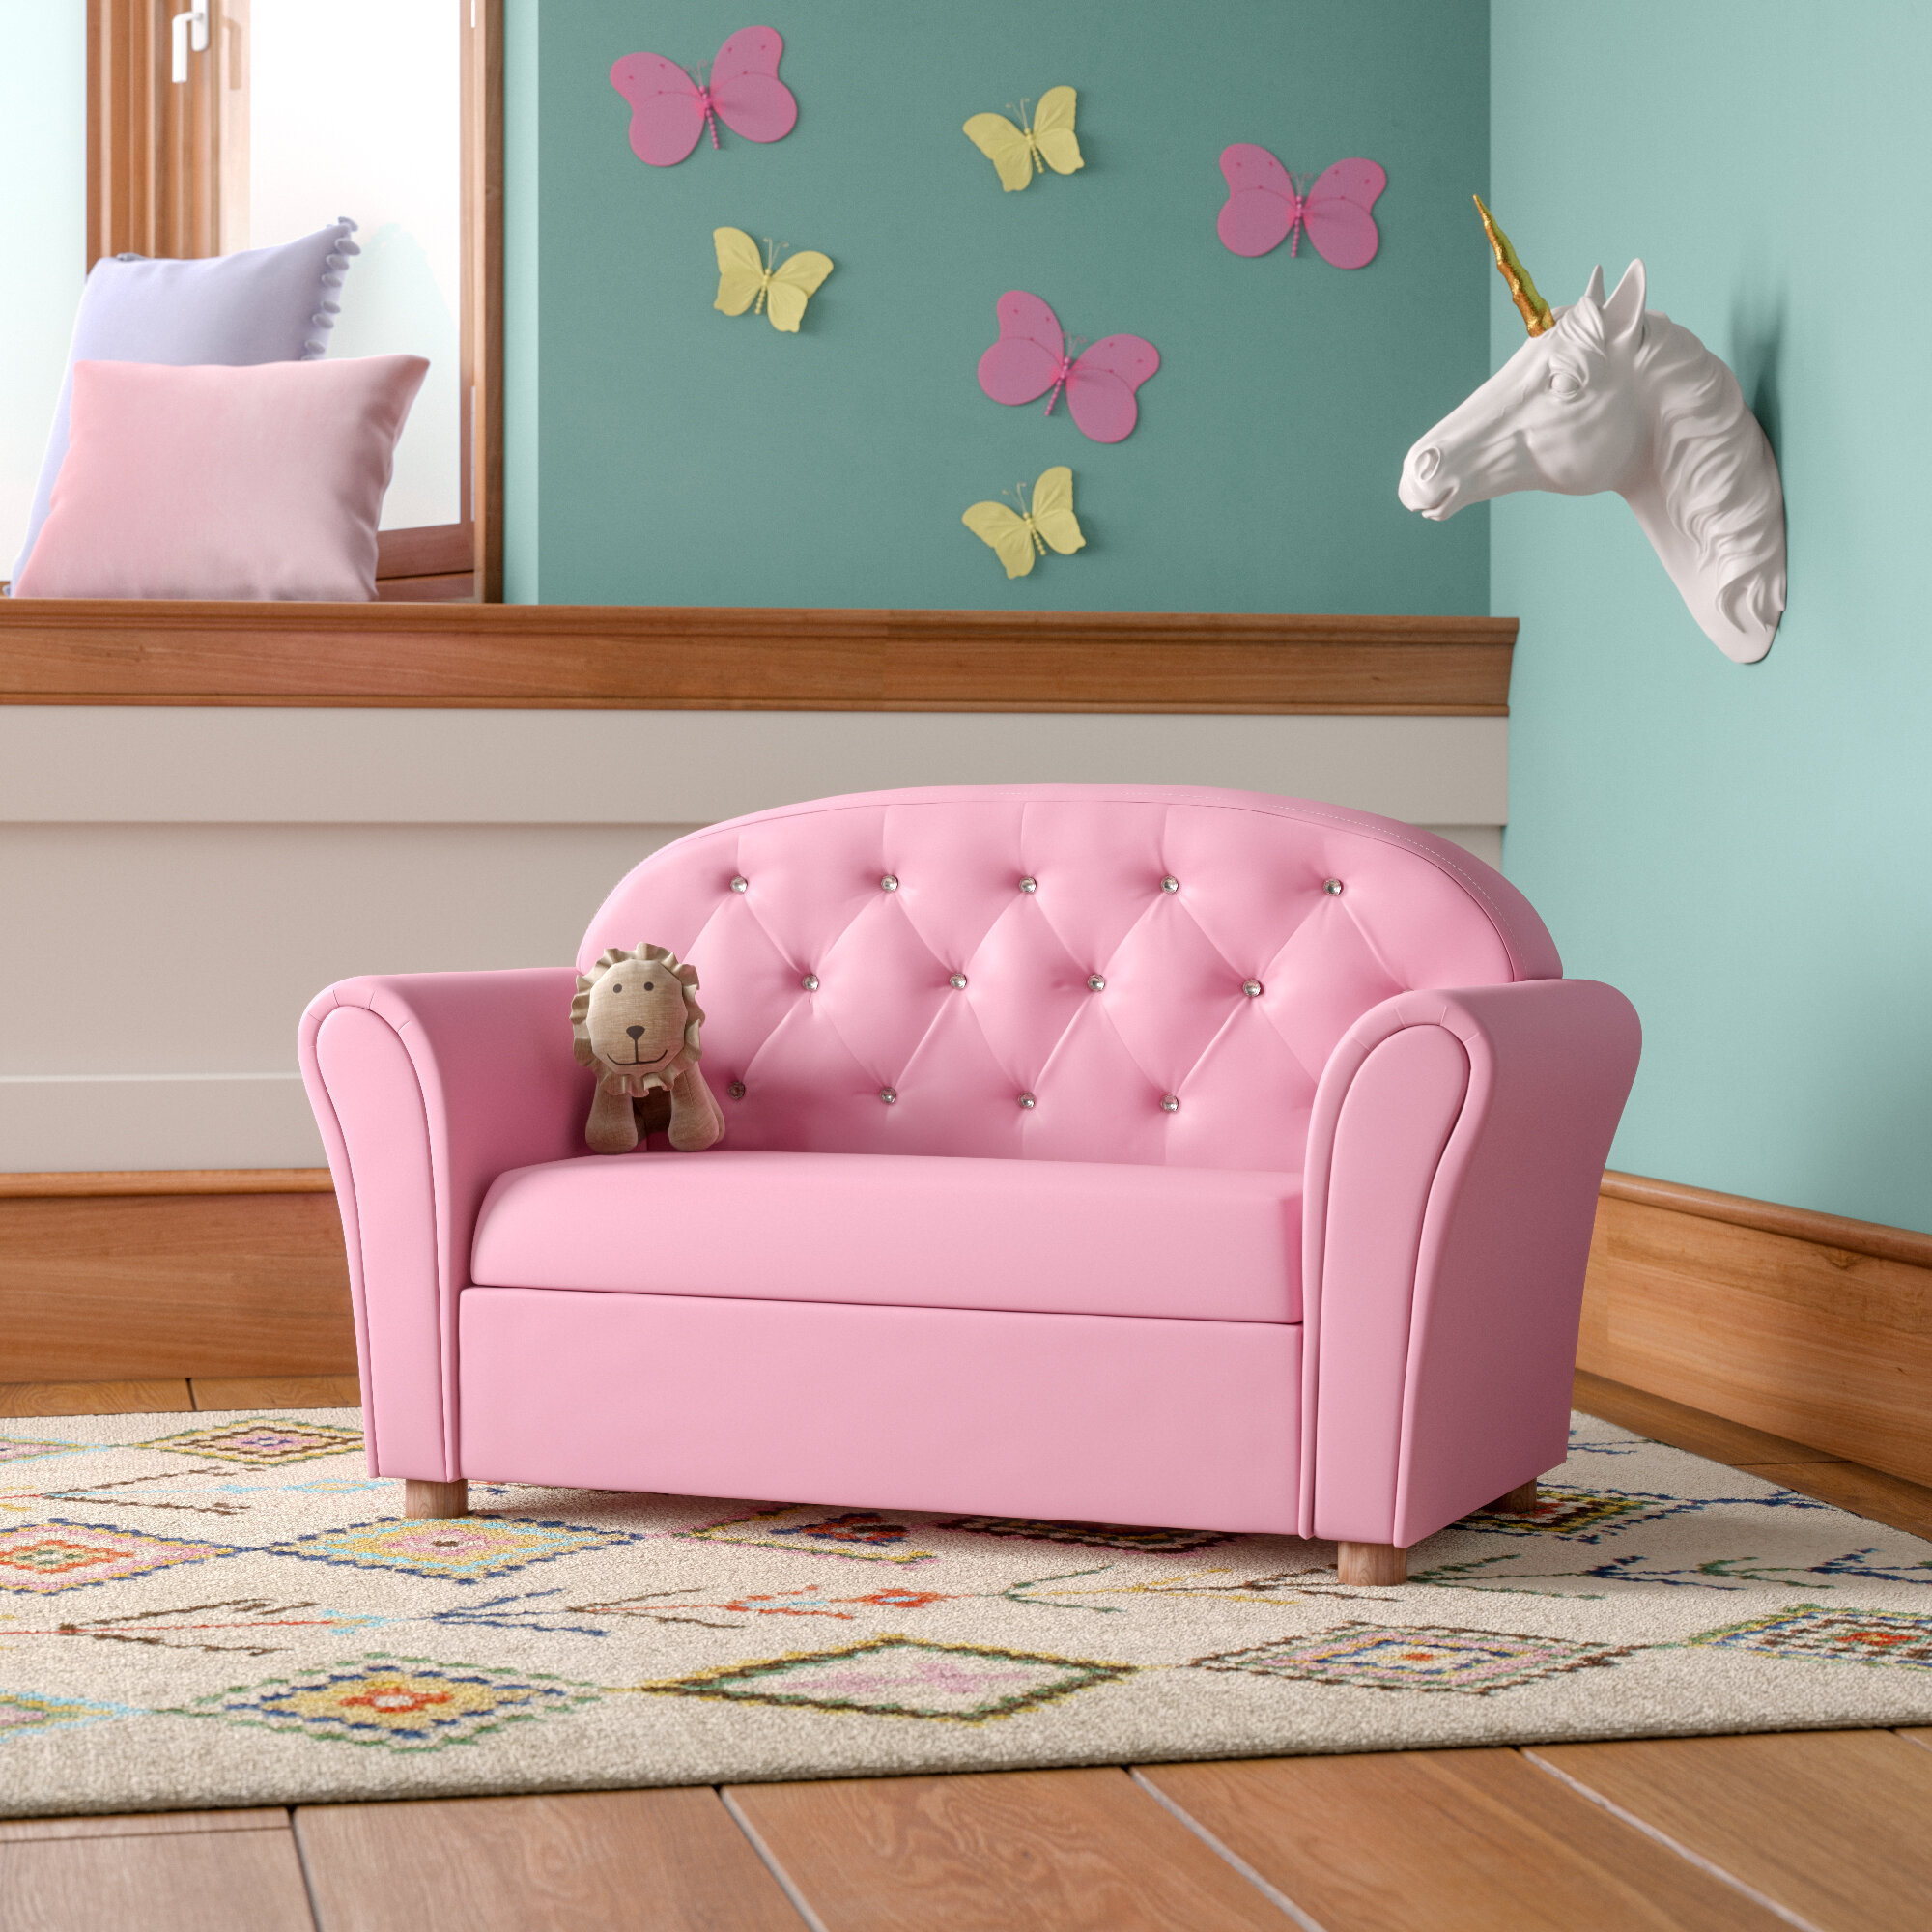 Kids Sofas & Group Seating & Couches You'll Love in 2021 | Wayfair